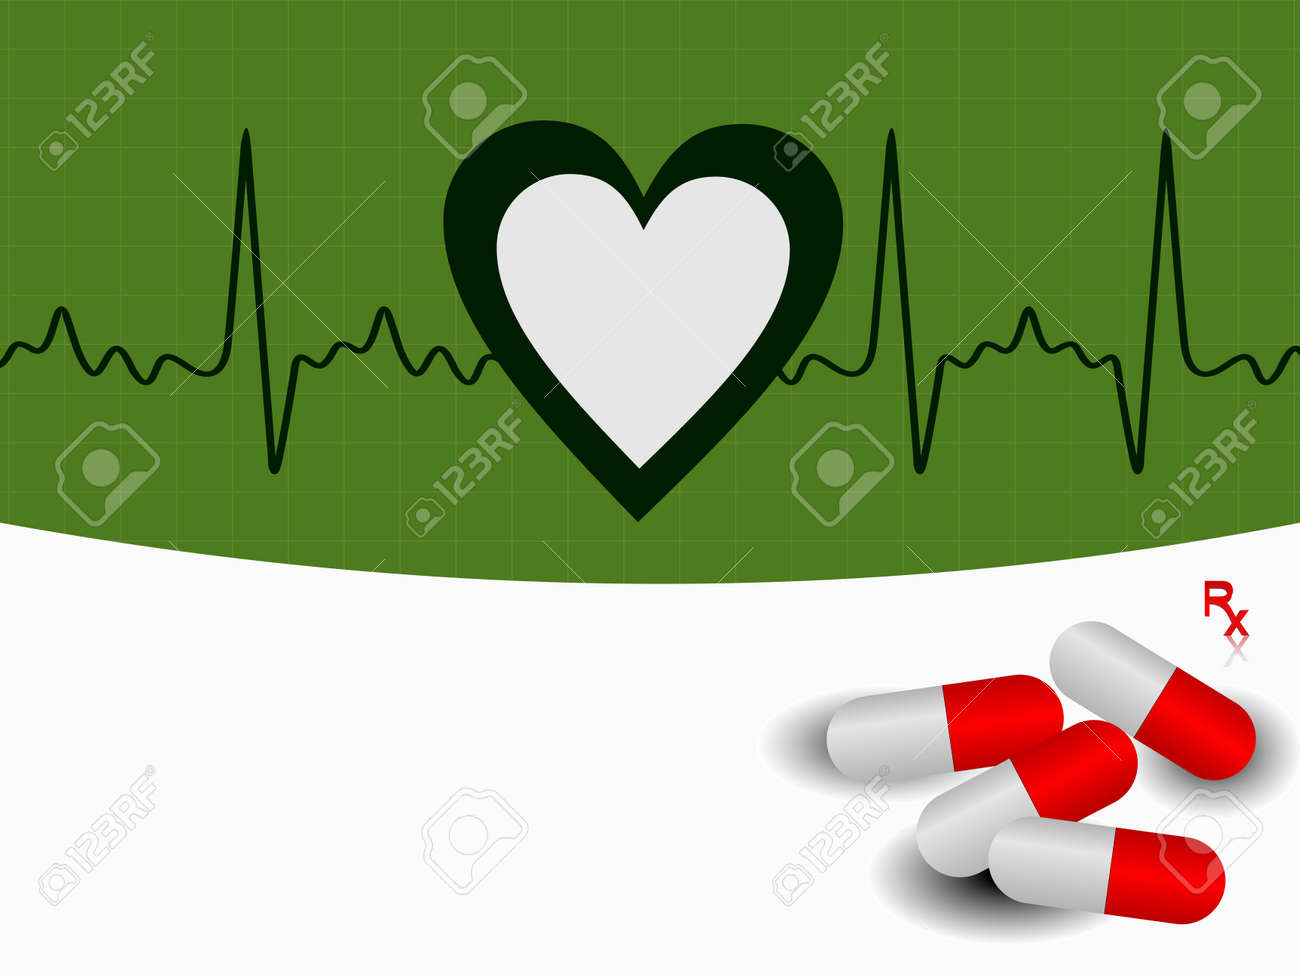 vector Heart beat  illustration with red pills on green background. Stock Vector - 12487760